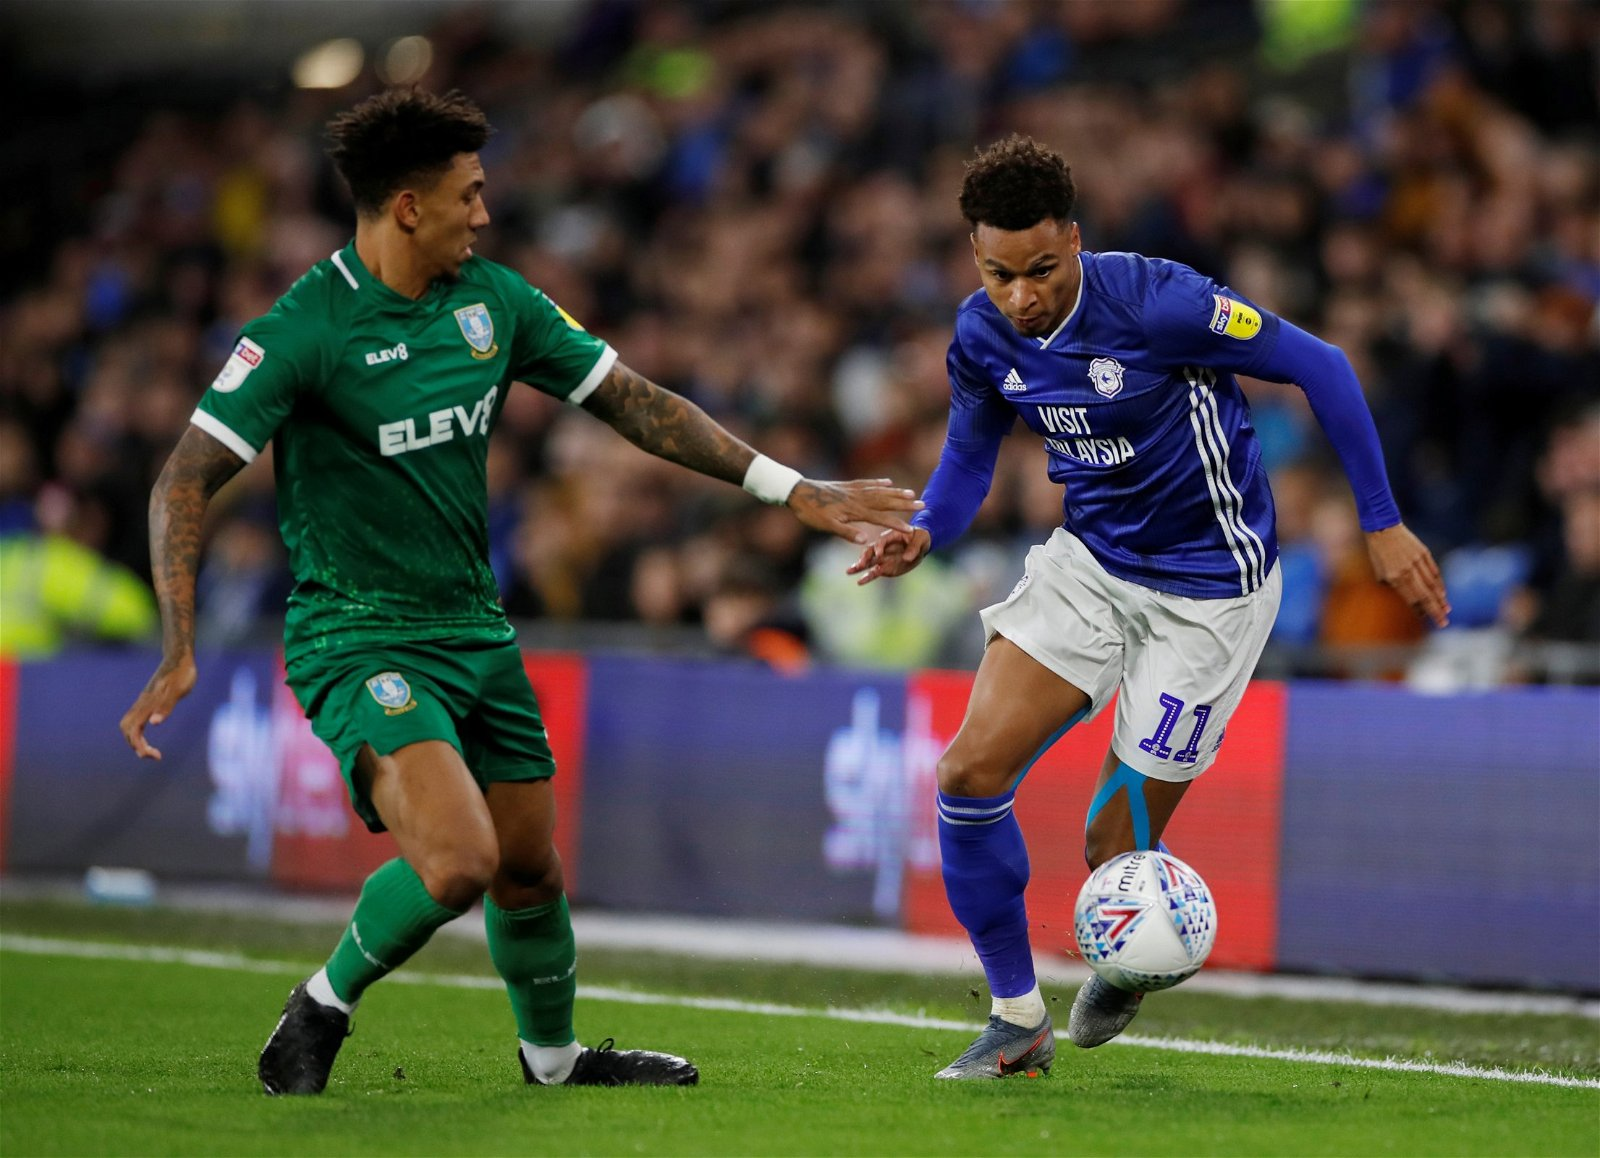 cardiff-winger-josh-murphy-in-action-against-sheffield-wednesday